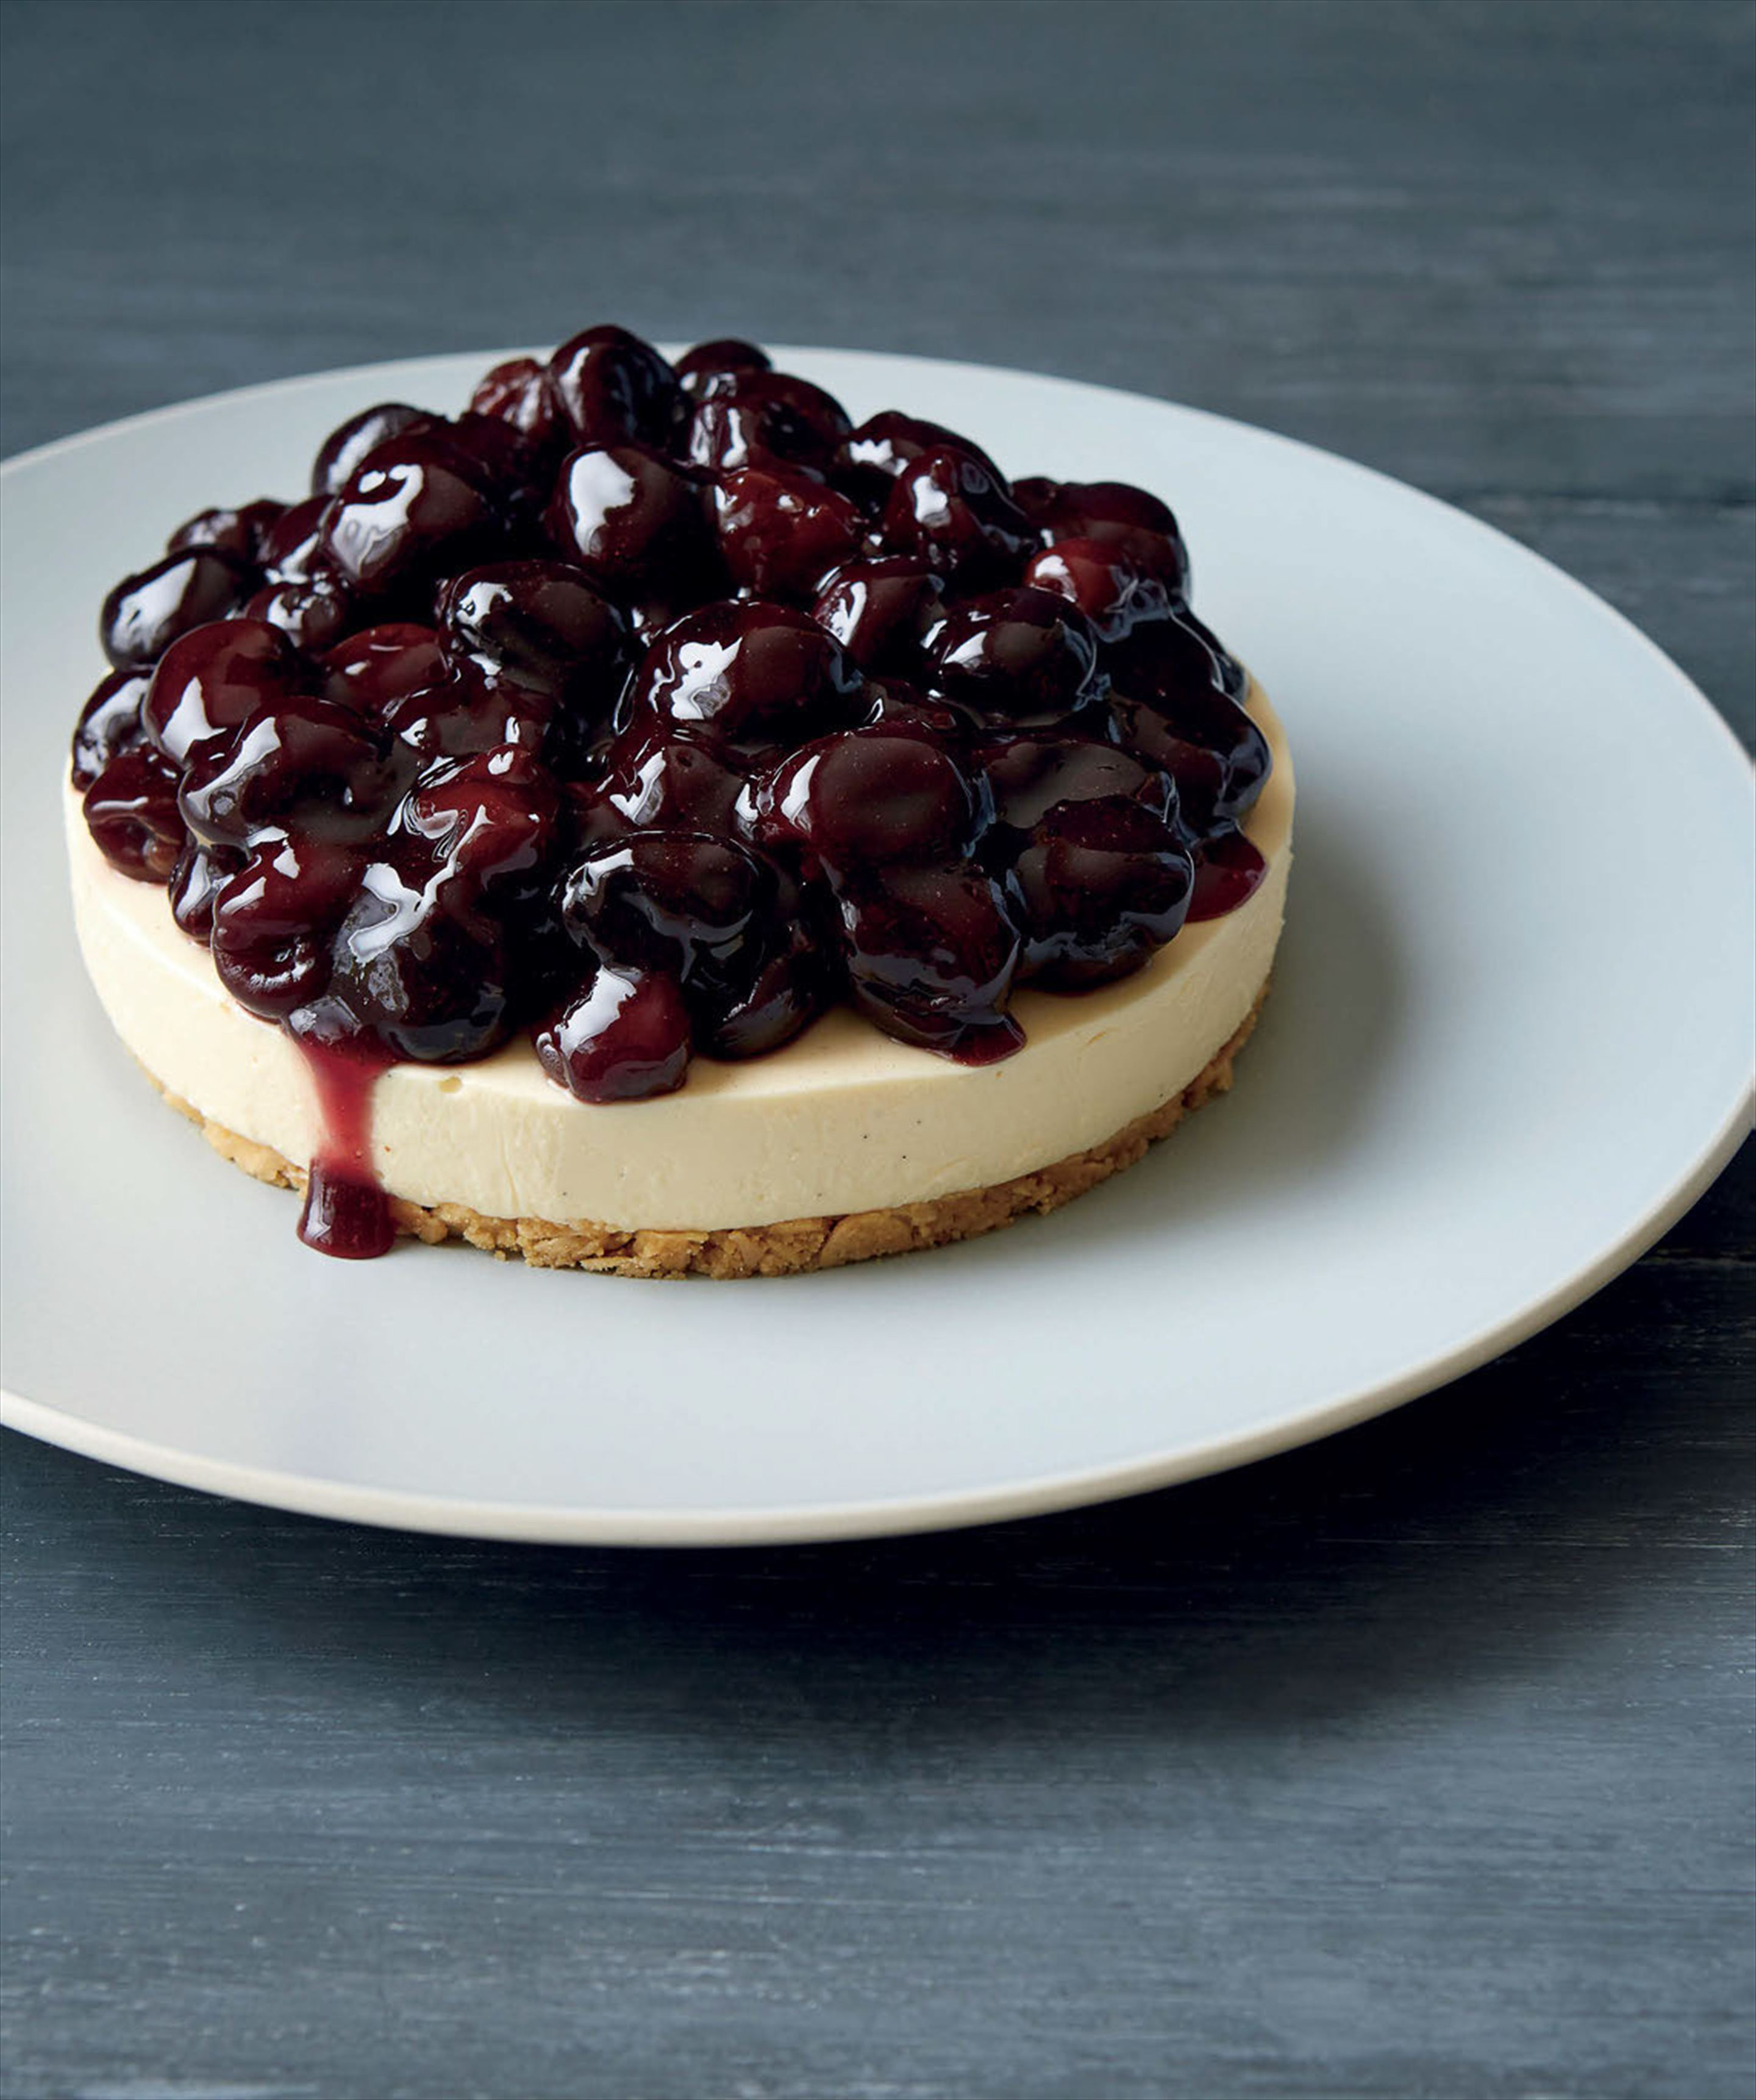 Cherry and almond cheesecake